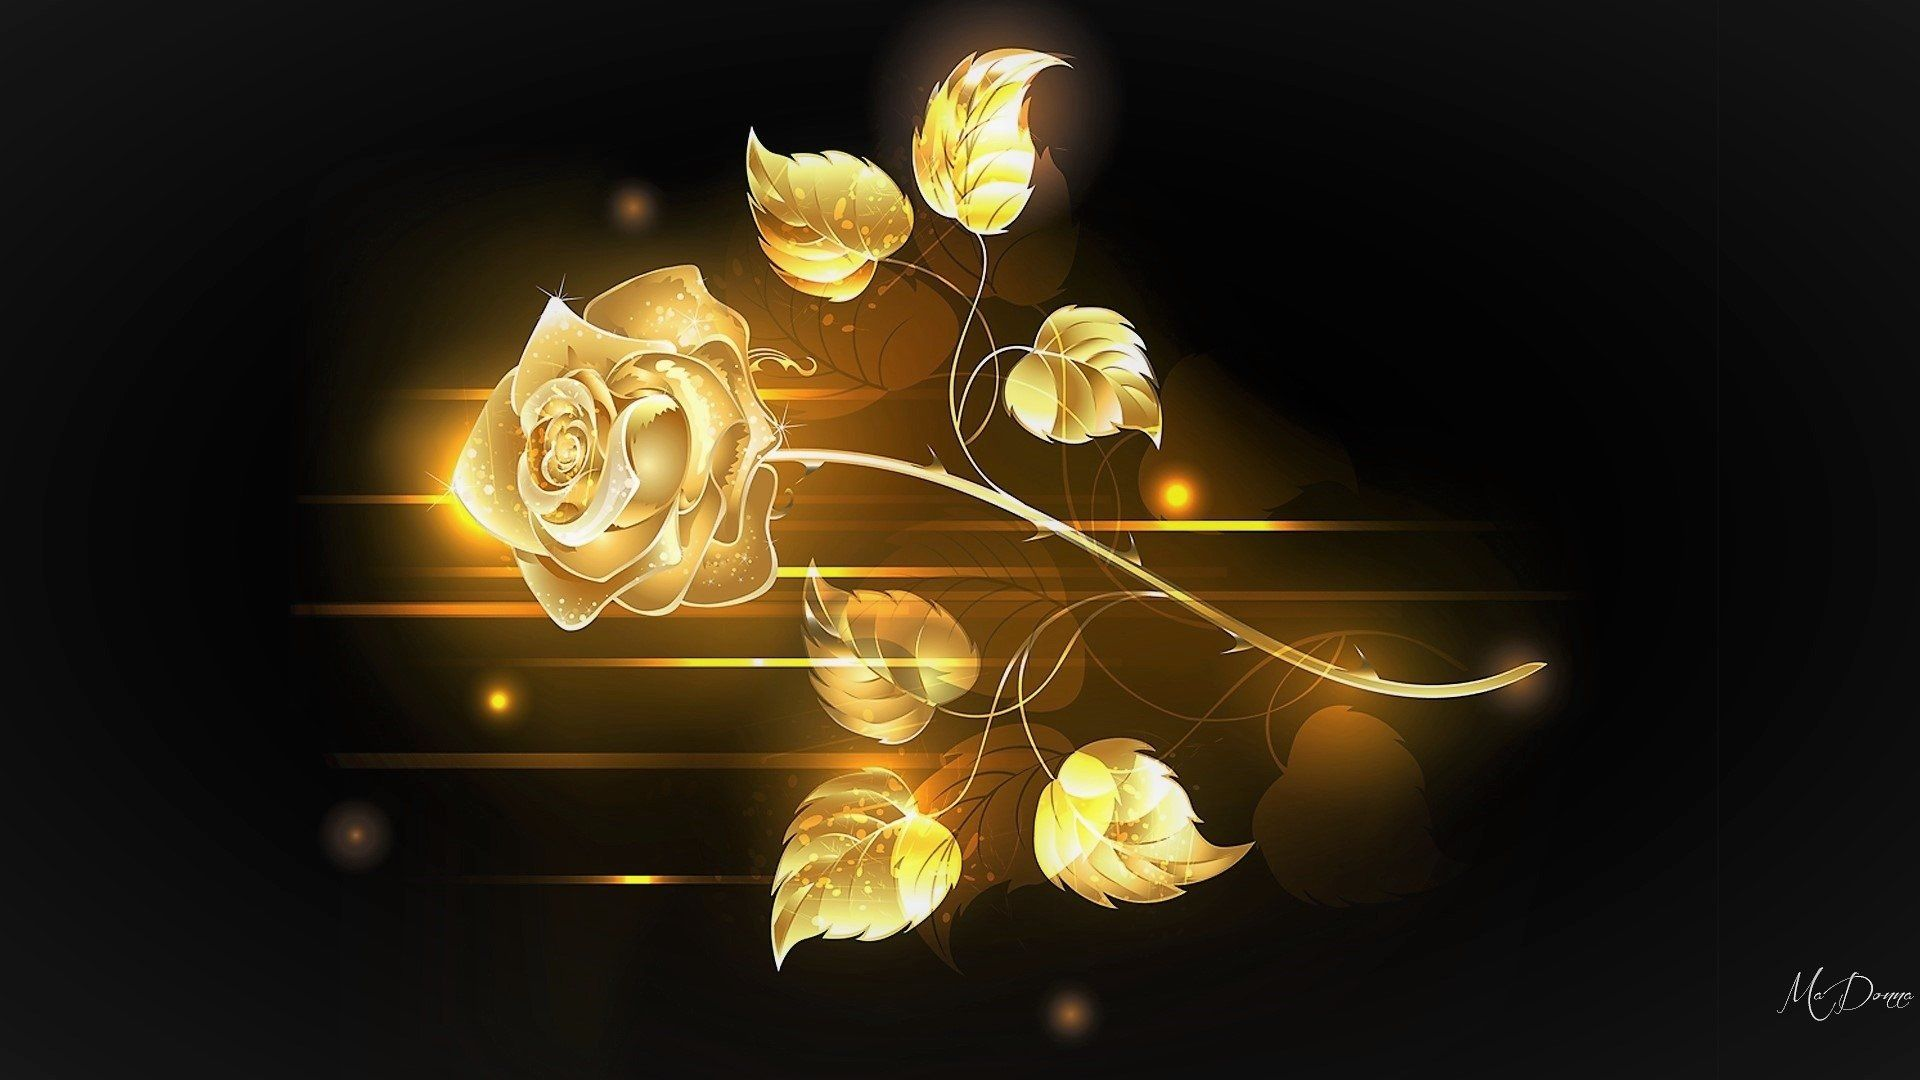 1920x1080 Golden Rose HD Wallpaper | Background Image | 1920x1080 | ID ...